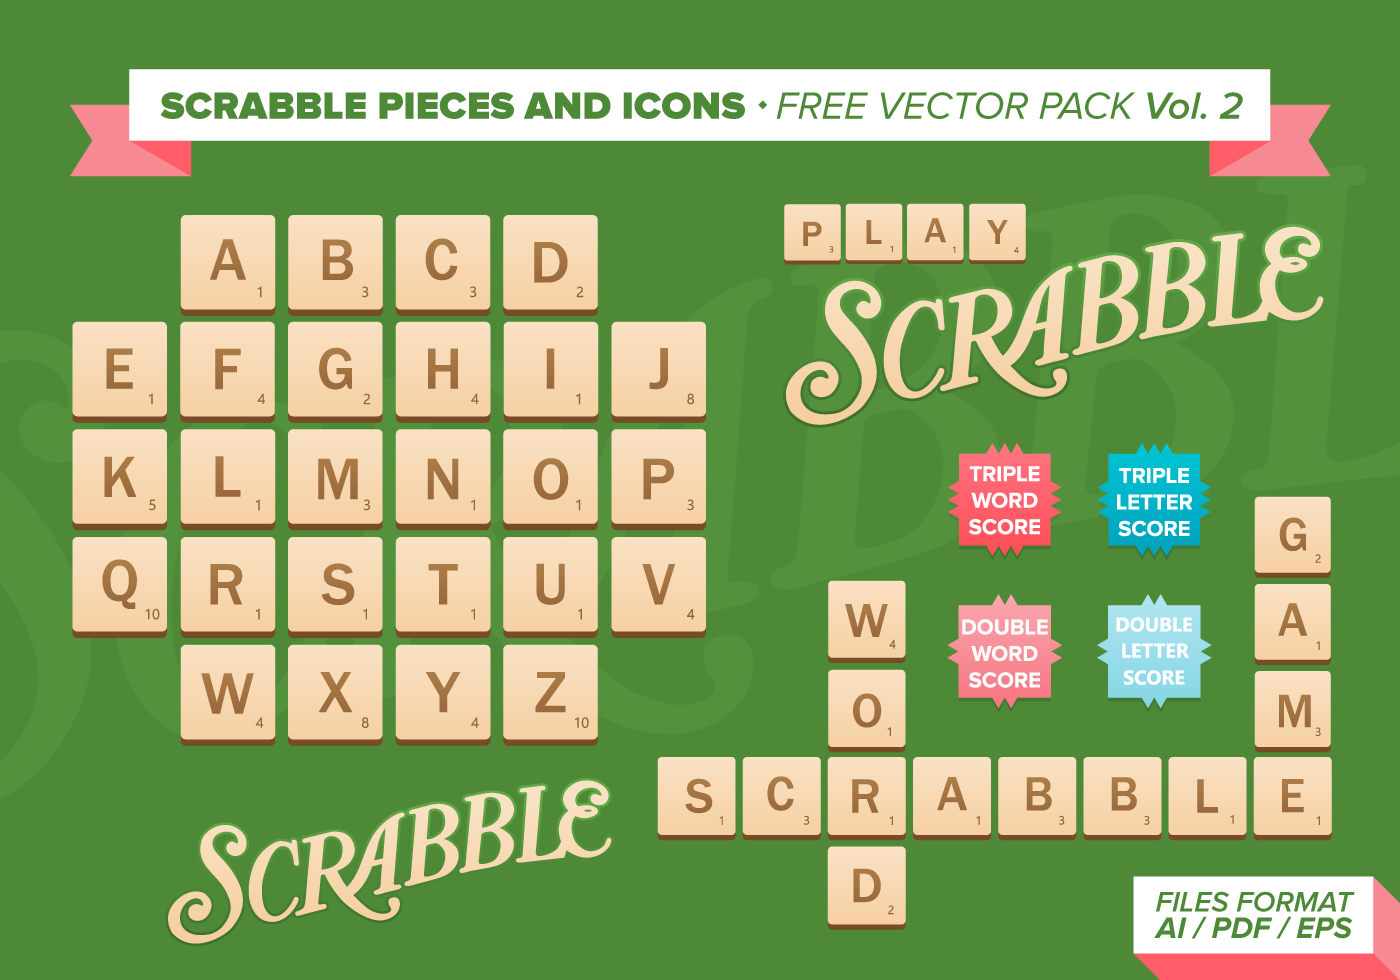 scrabble tiles svg scrabble eps scrabble stencil letter scrabble pieces and icons free vector pack free 754